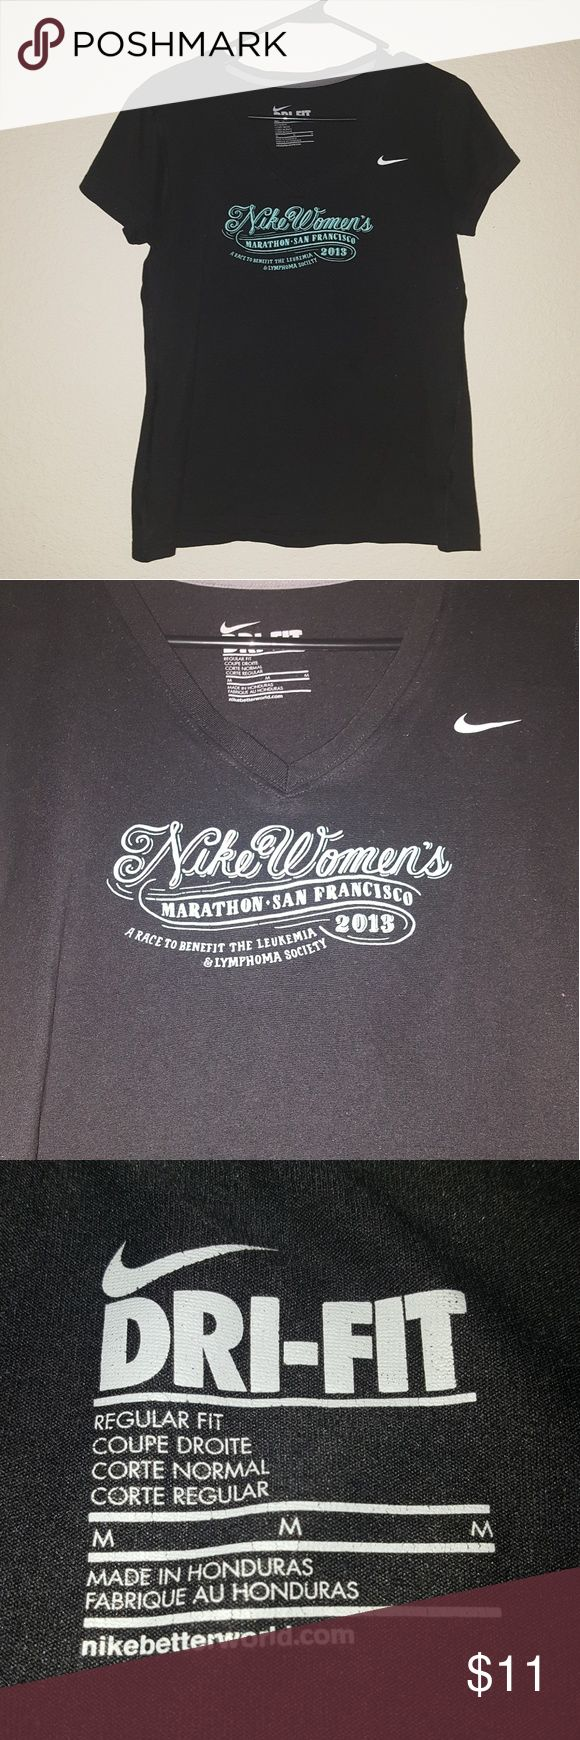 Woman's Nike V-neck Women's Nike Dri-FIT v-neck t-shirt. From the Nike women's 2013 marathon in San Francisco. Size medium. Great quality, super soft, and slightly stretchy. Nike Tops Tees - Short Sleeve